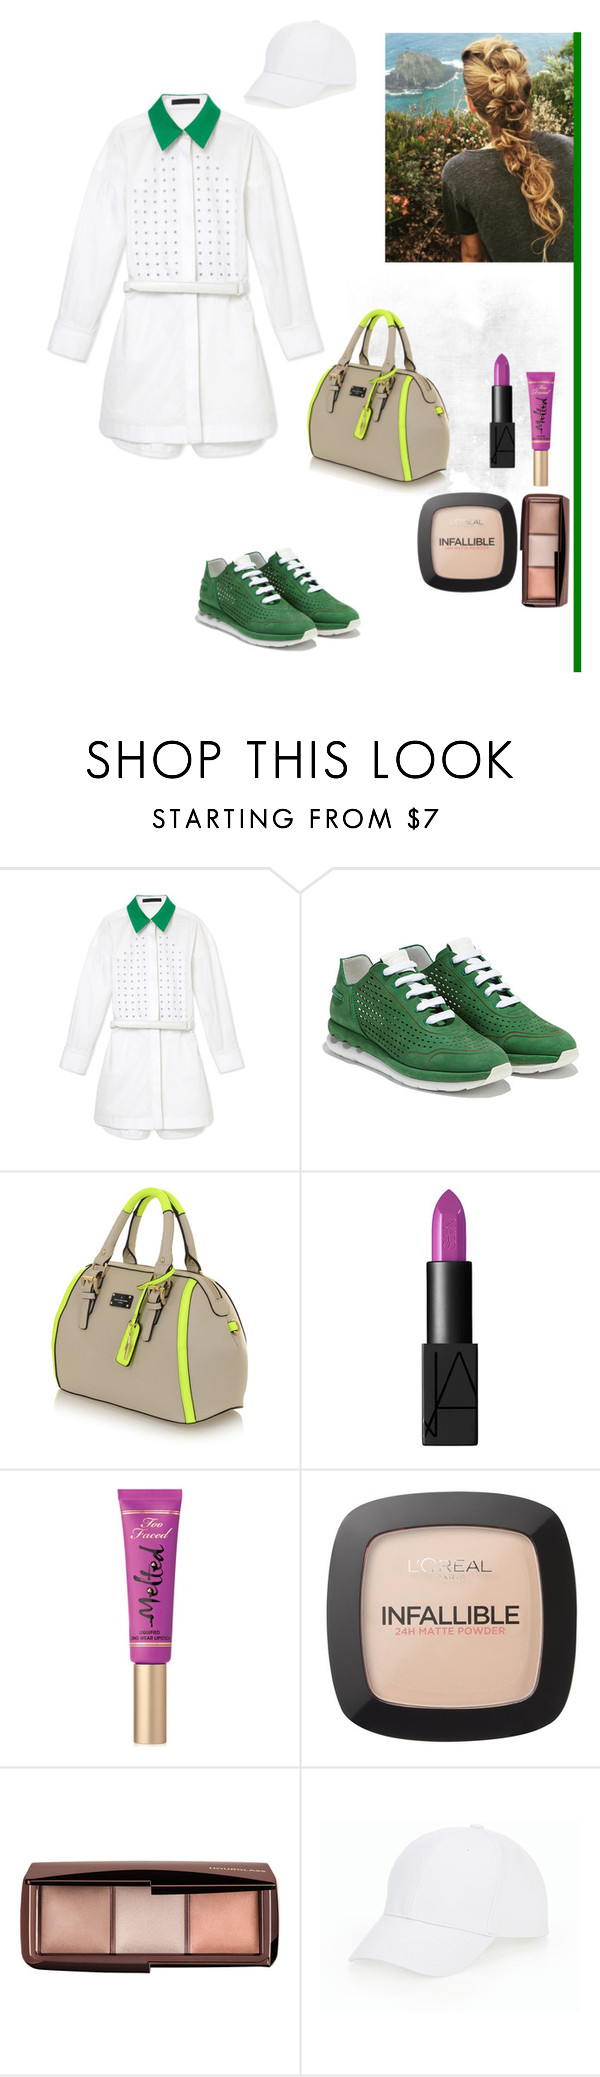 """Untitled #272"" by vykabackhand ❤ liked on Polyvore featuring Alexander Wang, Salvatore Ferragamo, NARS Cosmetics, Too Faced Cosmetics, L'Oréal Paris, Hourglass Cosmetics, Talbots, women's clothing, women and female"